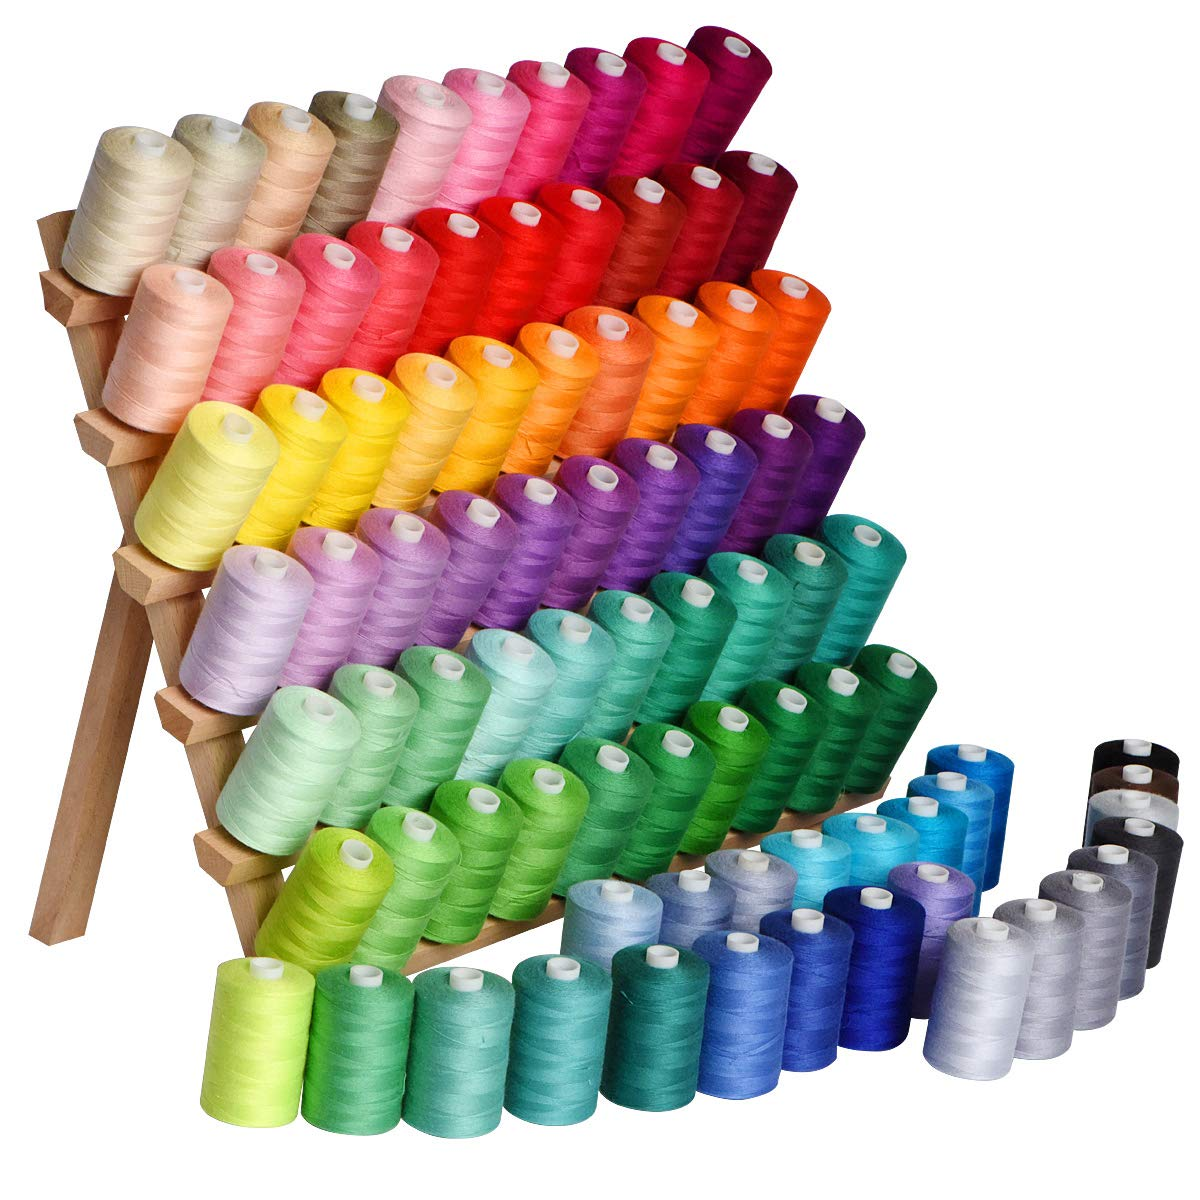 Cotton Threads-sewing thread- 85rolls (85000Y) cotton rainbow colored embroidery thread 40WT by LE PAON